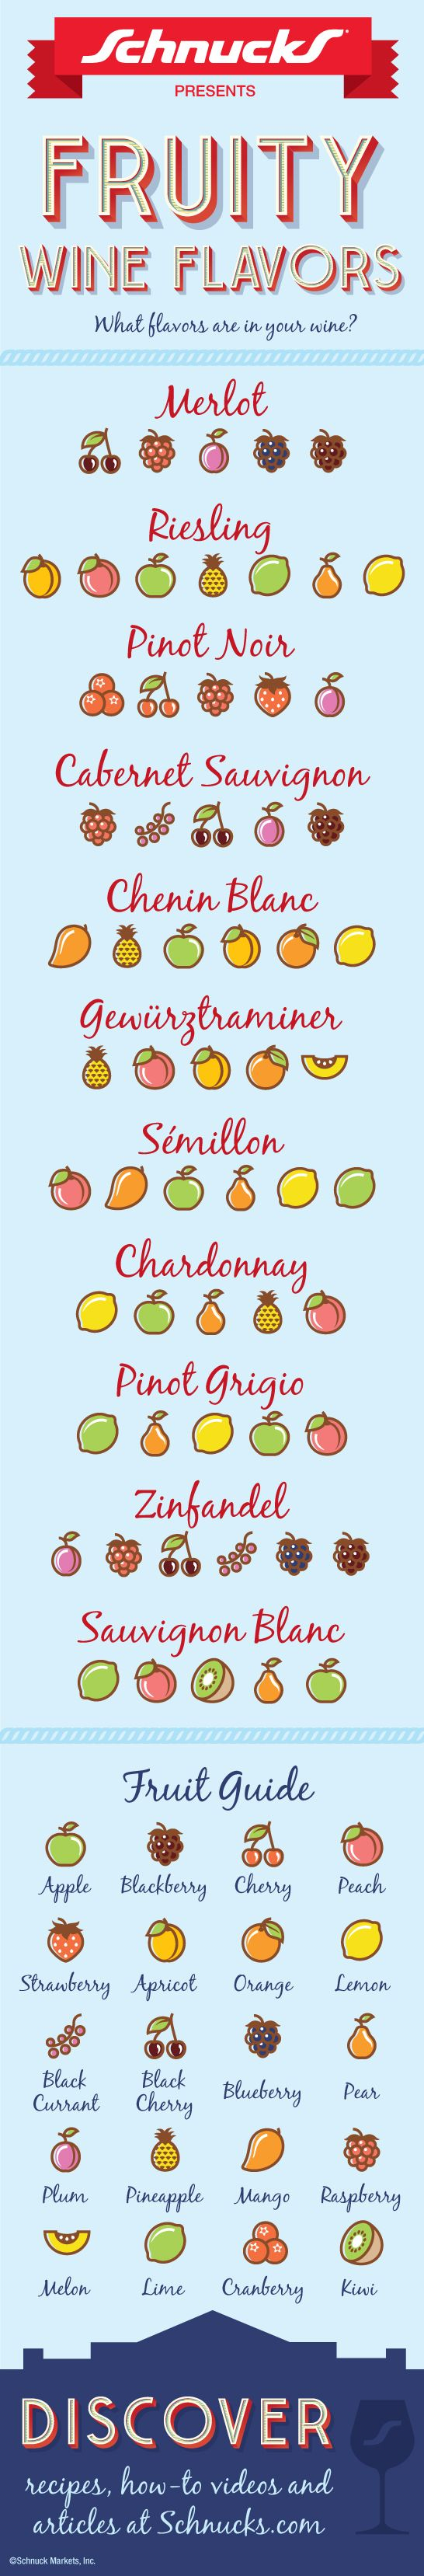 Fruity Wine Flavors #infographic #infografía